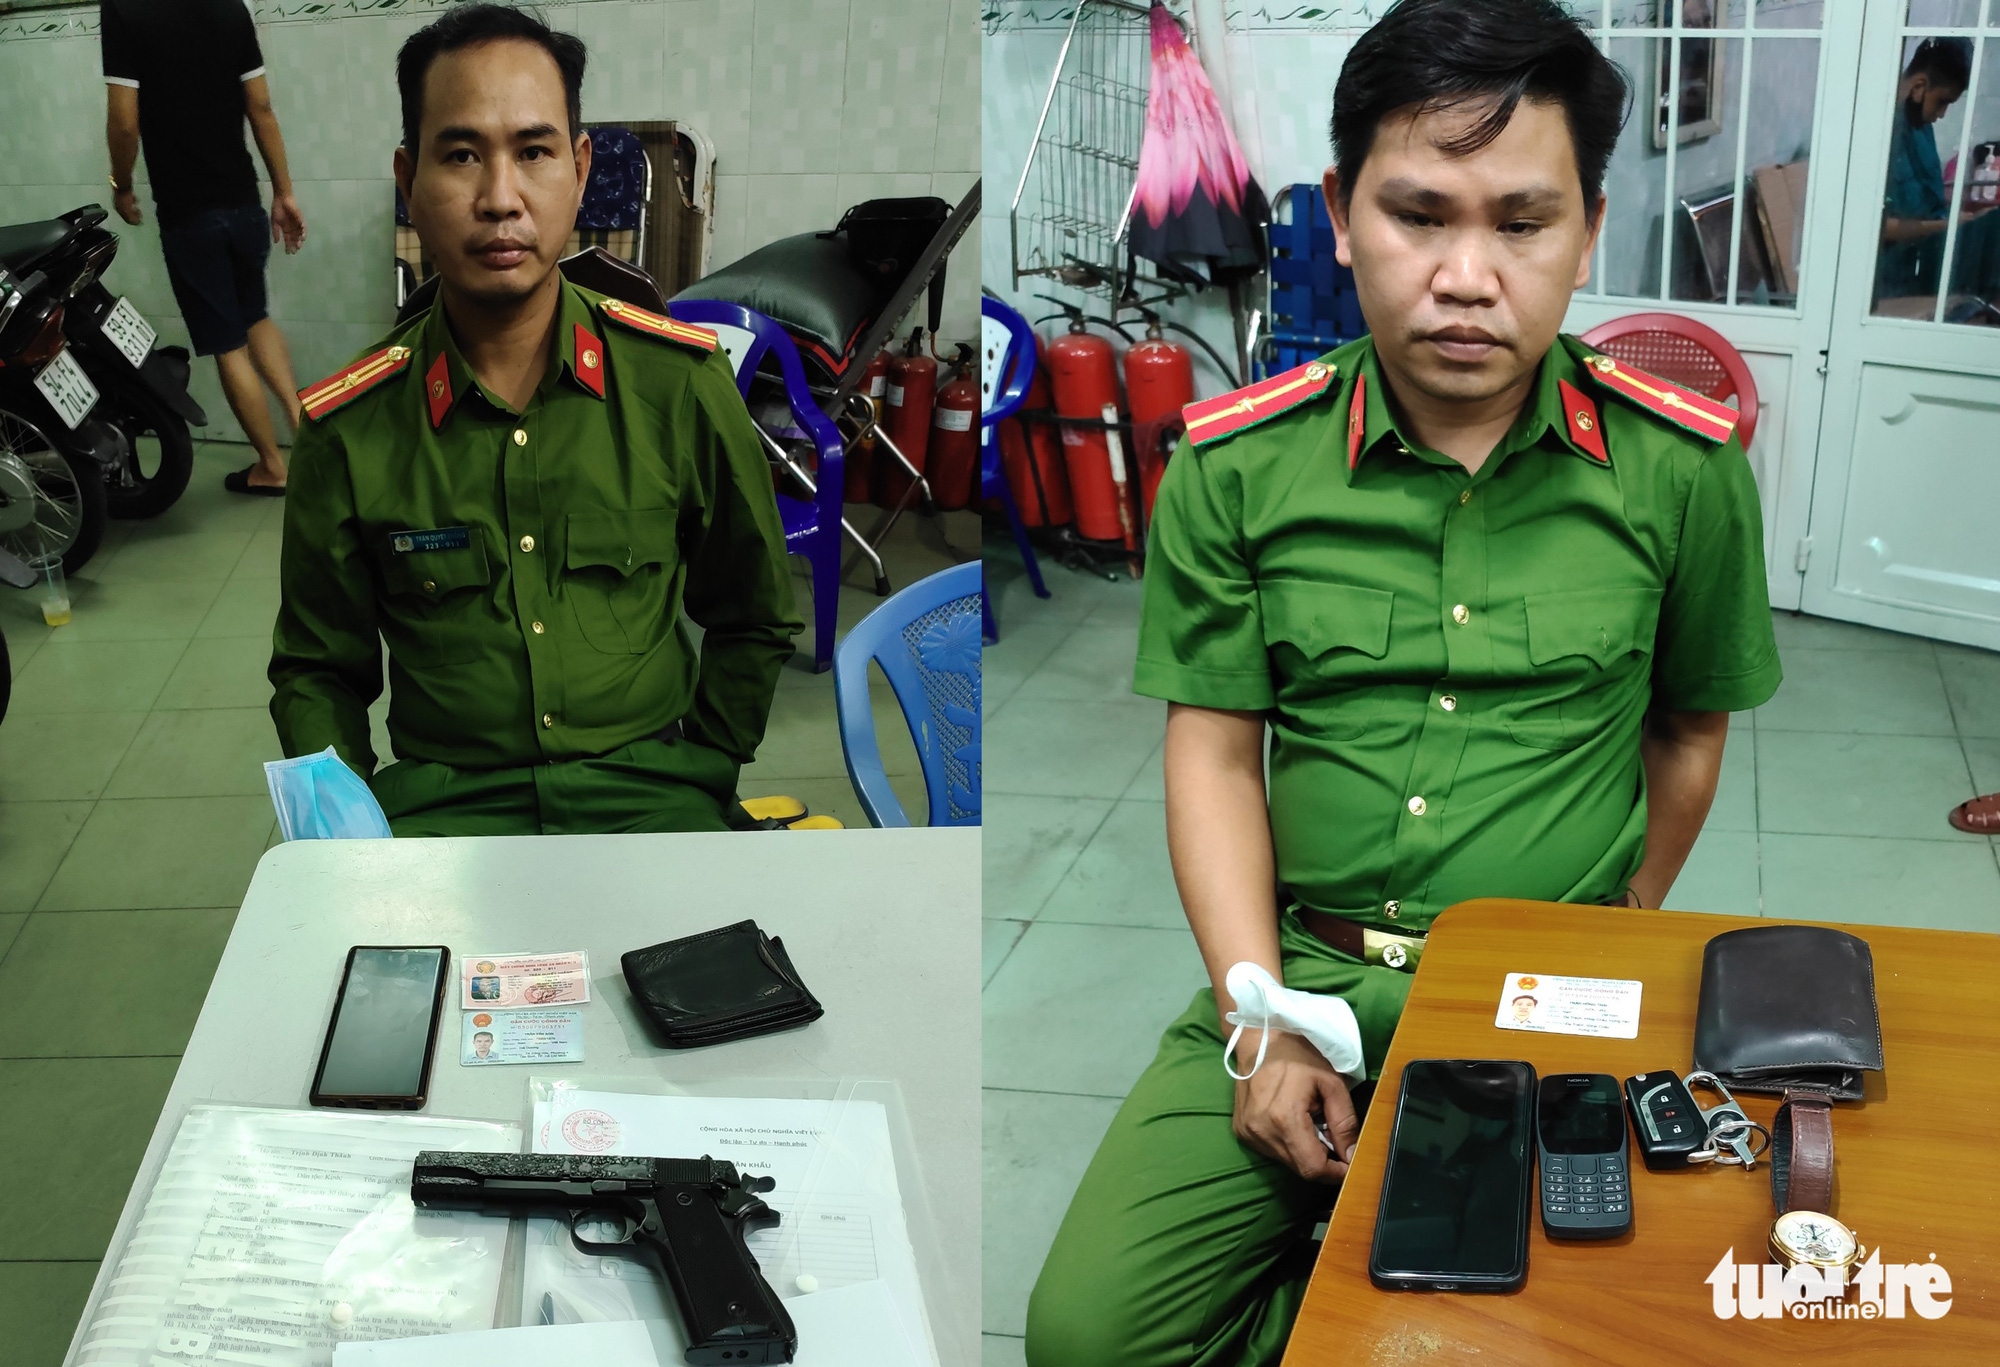 Men impersonate police to extort residents in Ho Chi Minh City